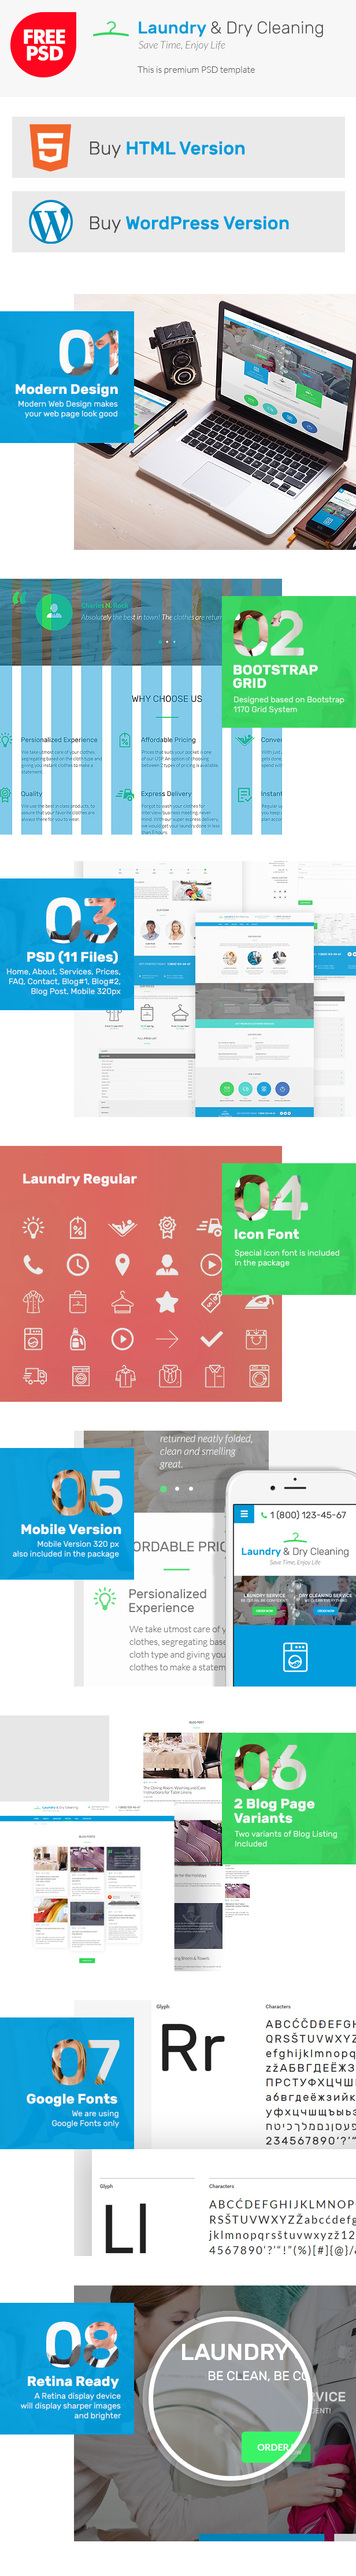 Presentation for free PSD Laundry and Dry Cleaning template